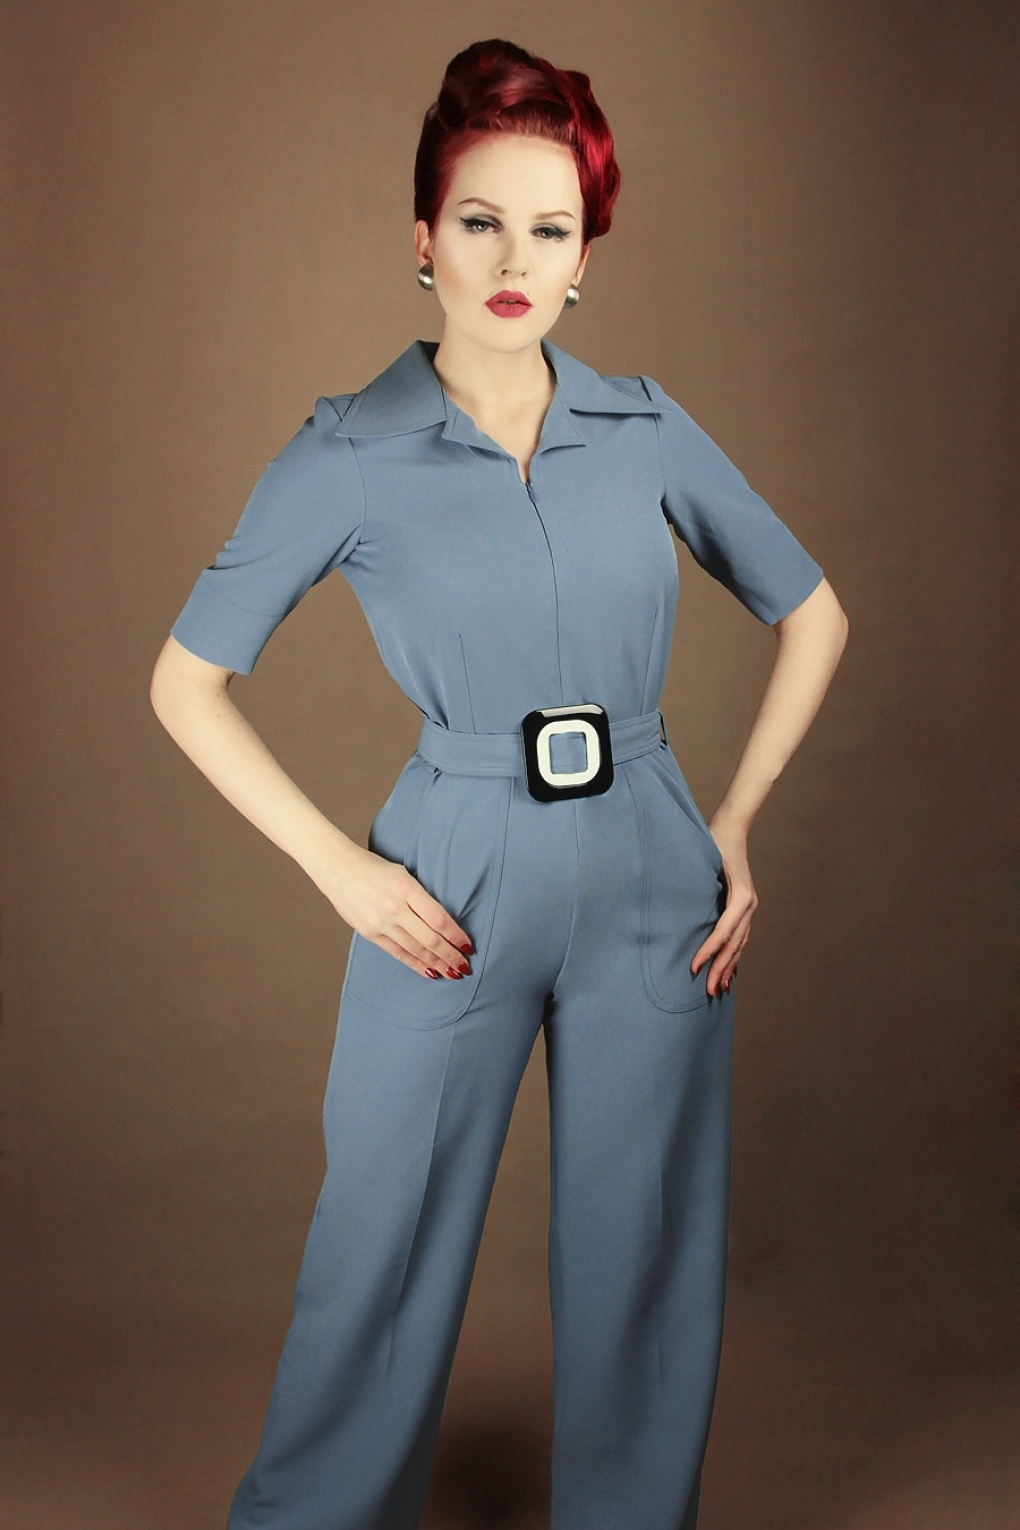 70s Outfits – 70s Style Ideas for Women 60s Vintage Baby Jumpsuit in Stone Blue �129.85 AT vintagedancer.com